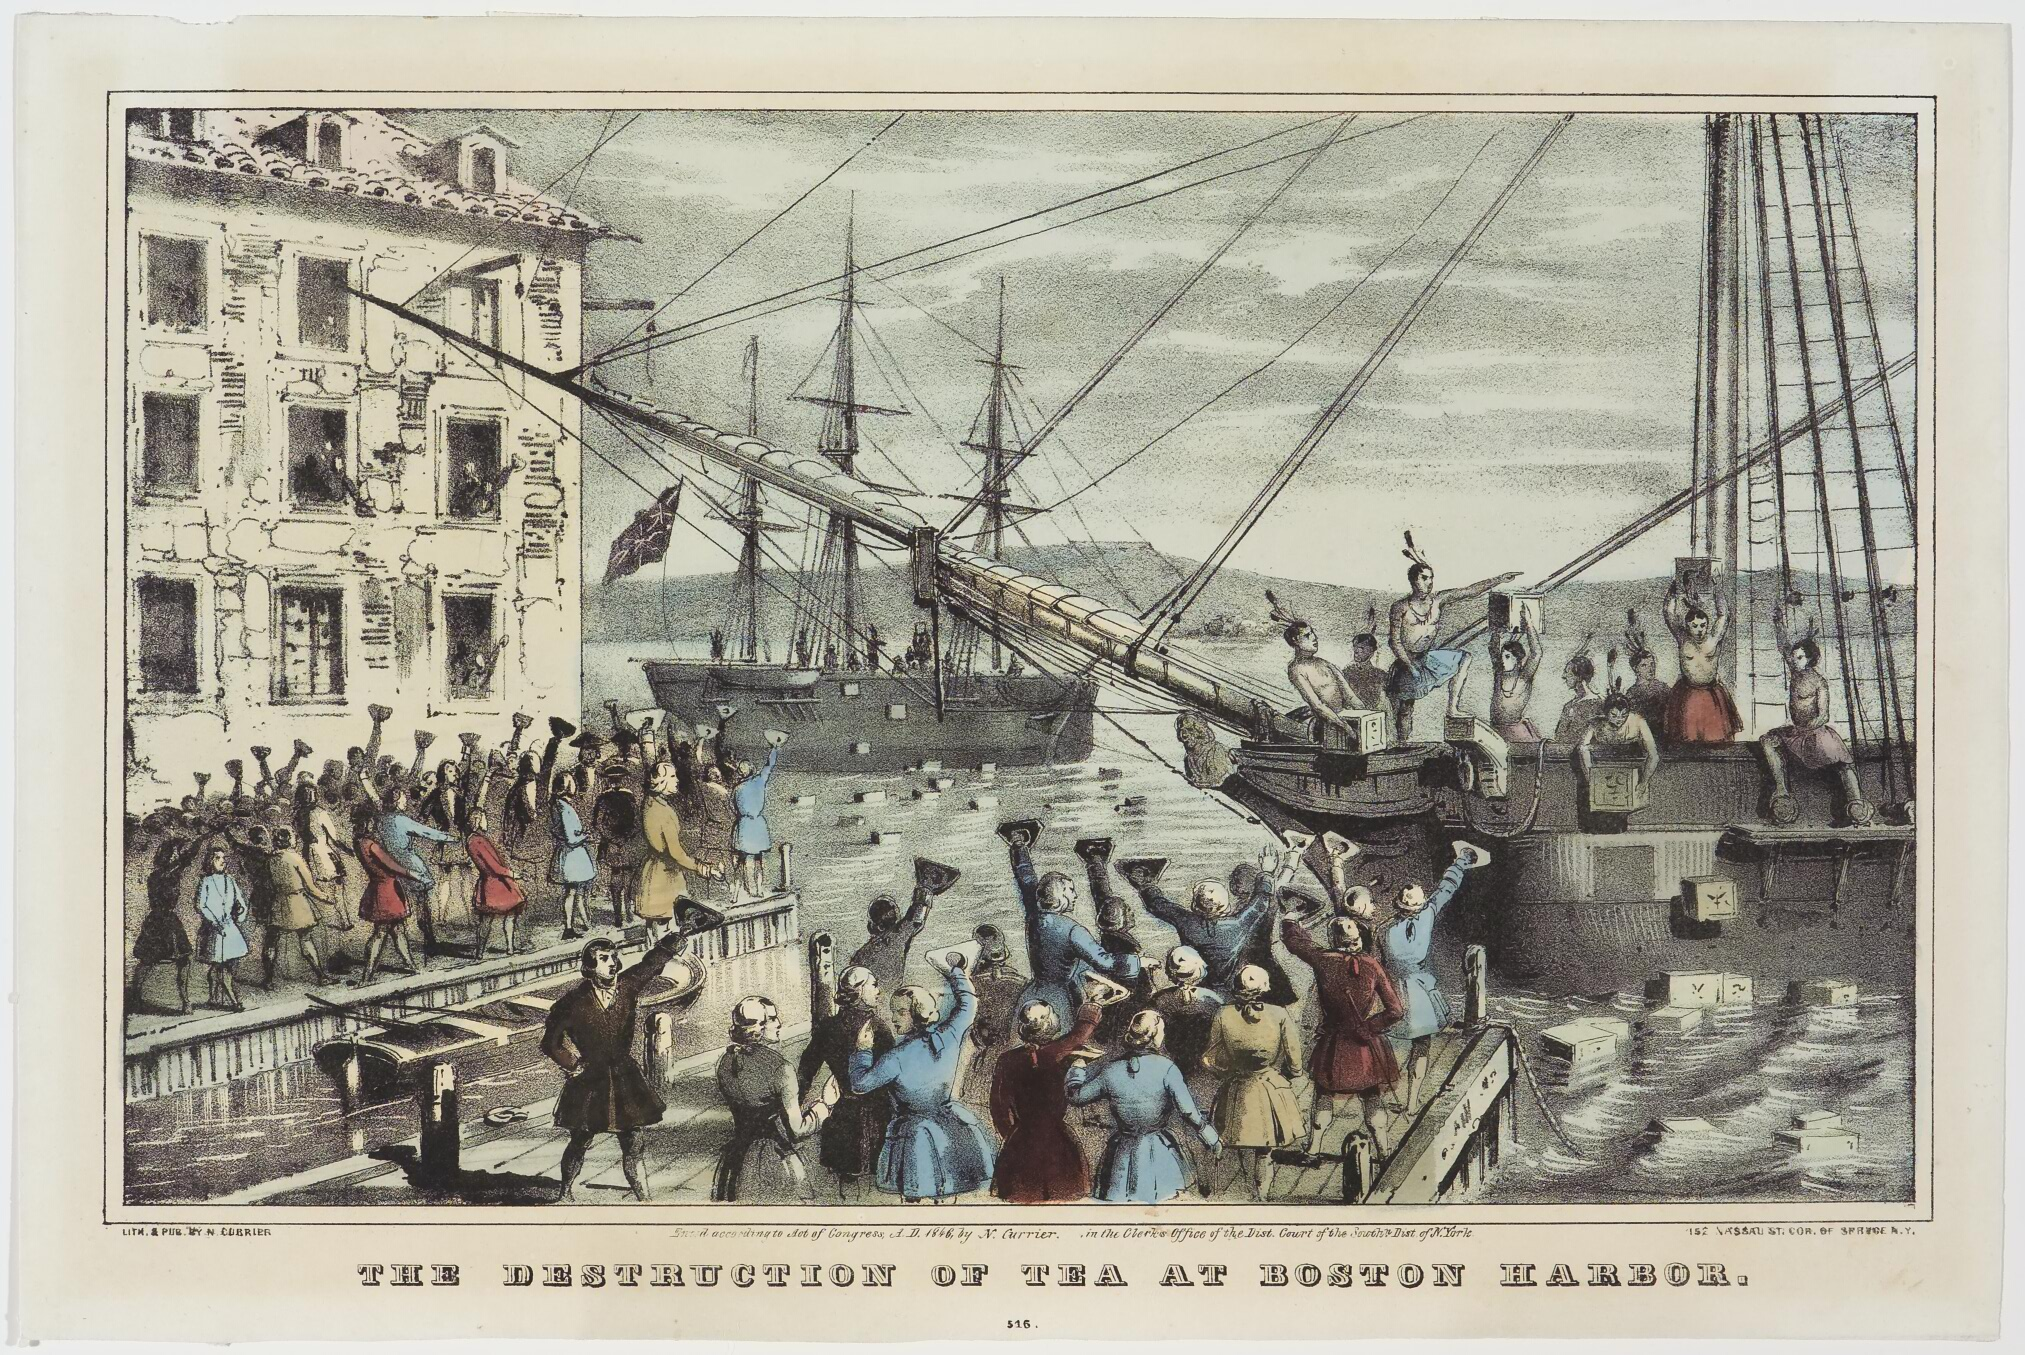 Ship at right in harbor with Native Americans tossing crates off ship into water